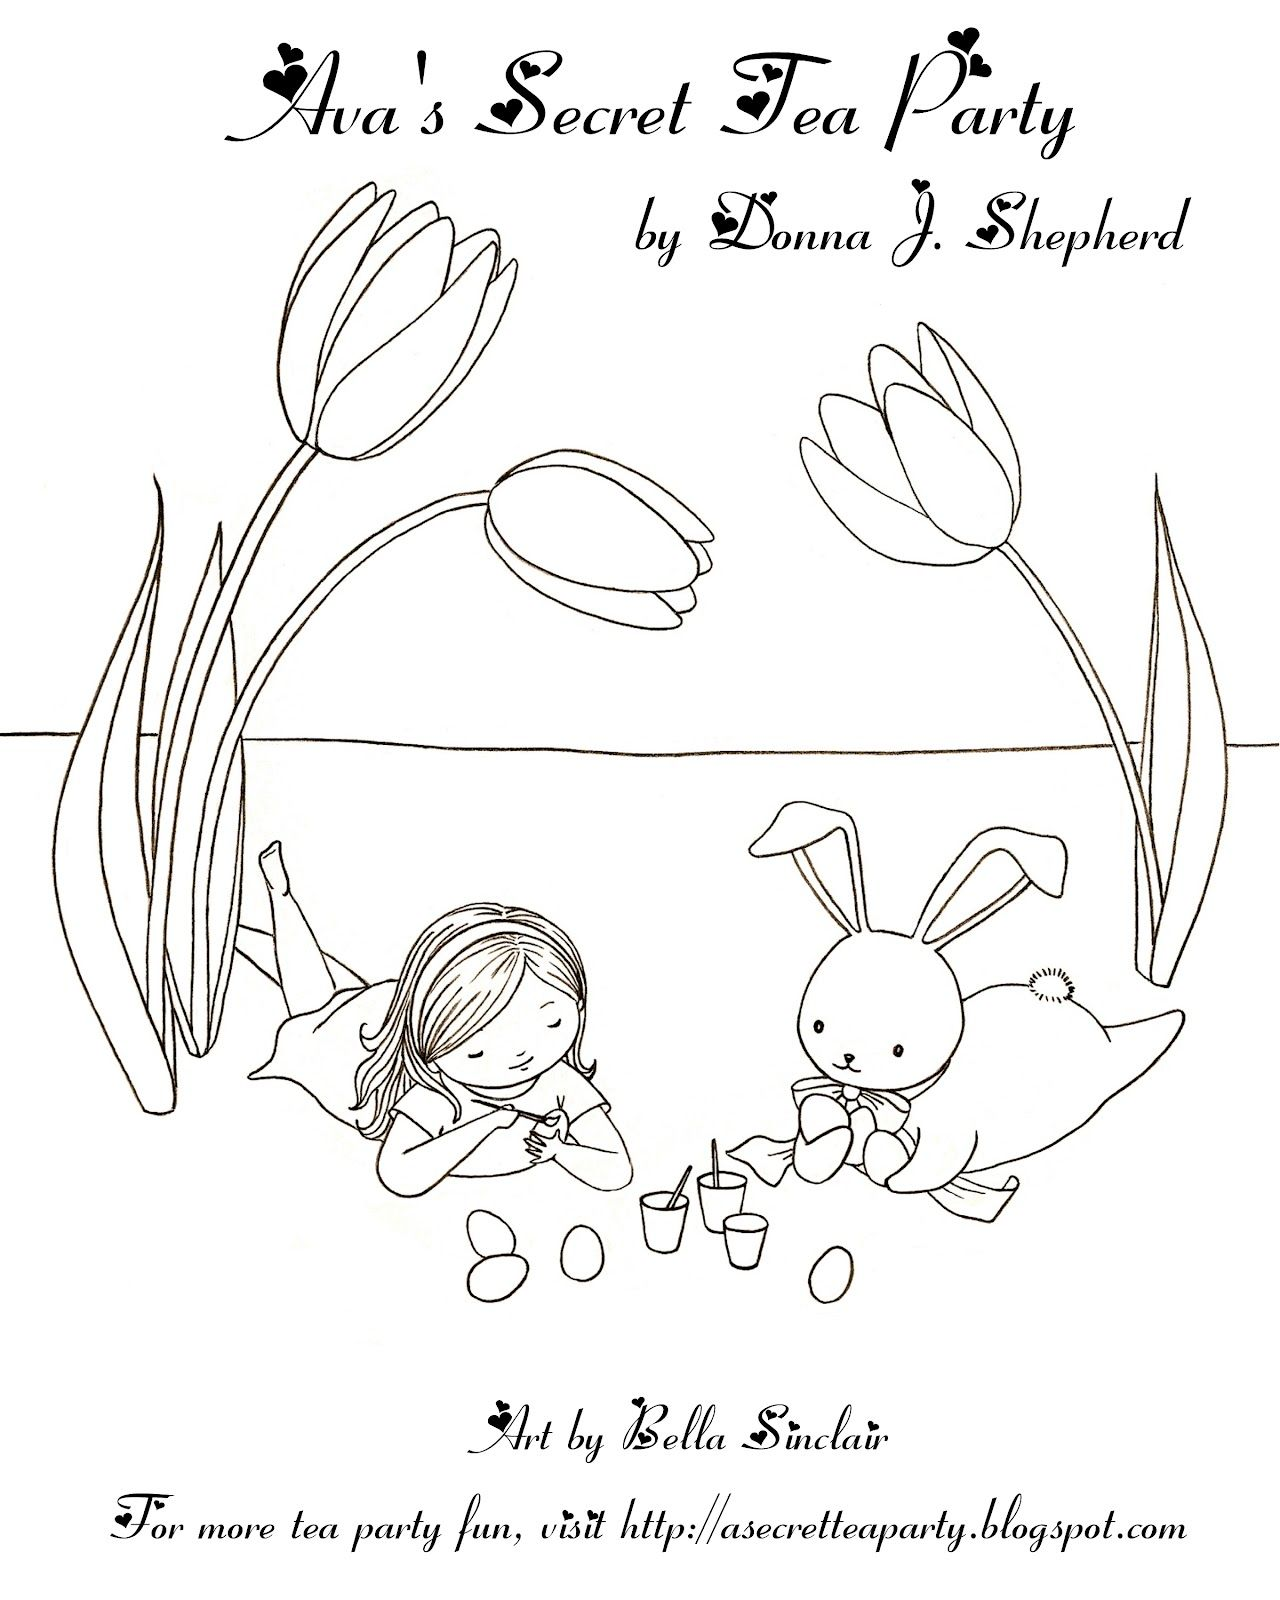 Avas Secret Tea Party Coloring Page The Easter Bunny And Ava Avas Secret Tea Party Donna S Activity Sheets For Kids And Kids At Heart Easter Coloring